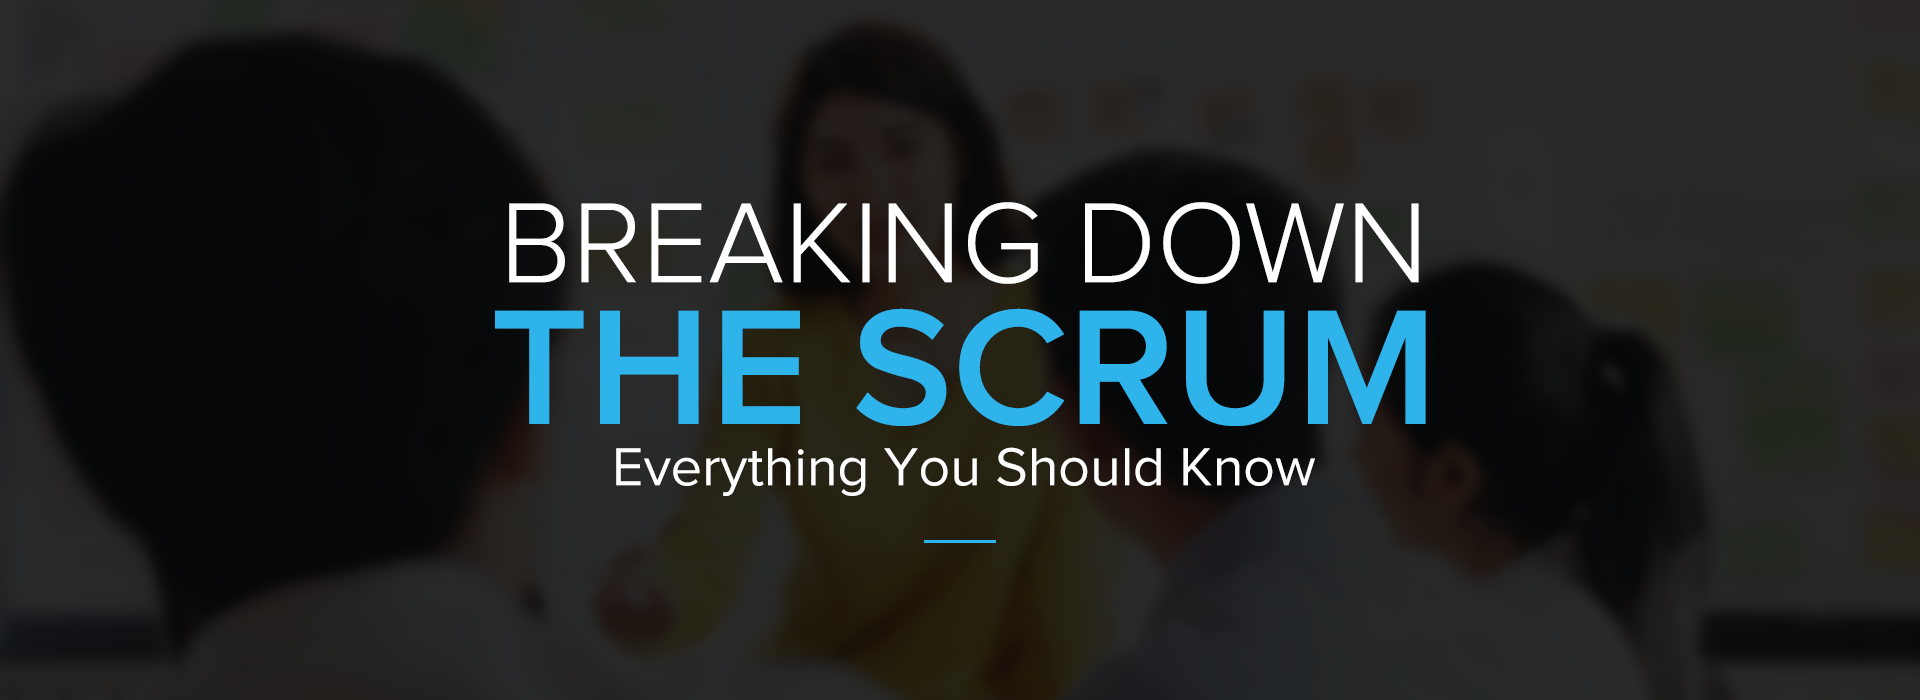 Breaking-Down-The-Scrum-_-Everything-You-Should-Know